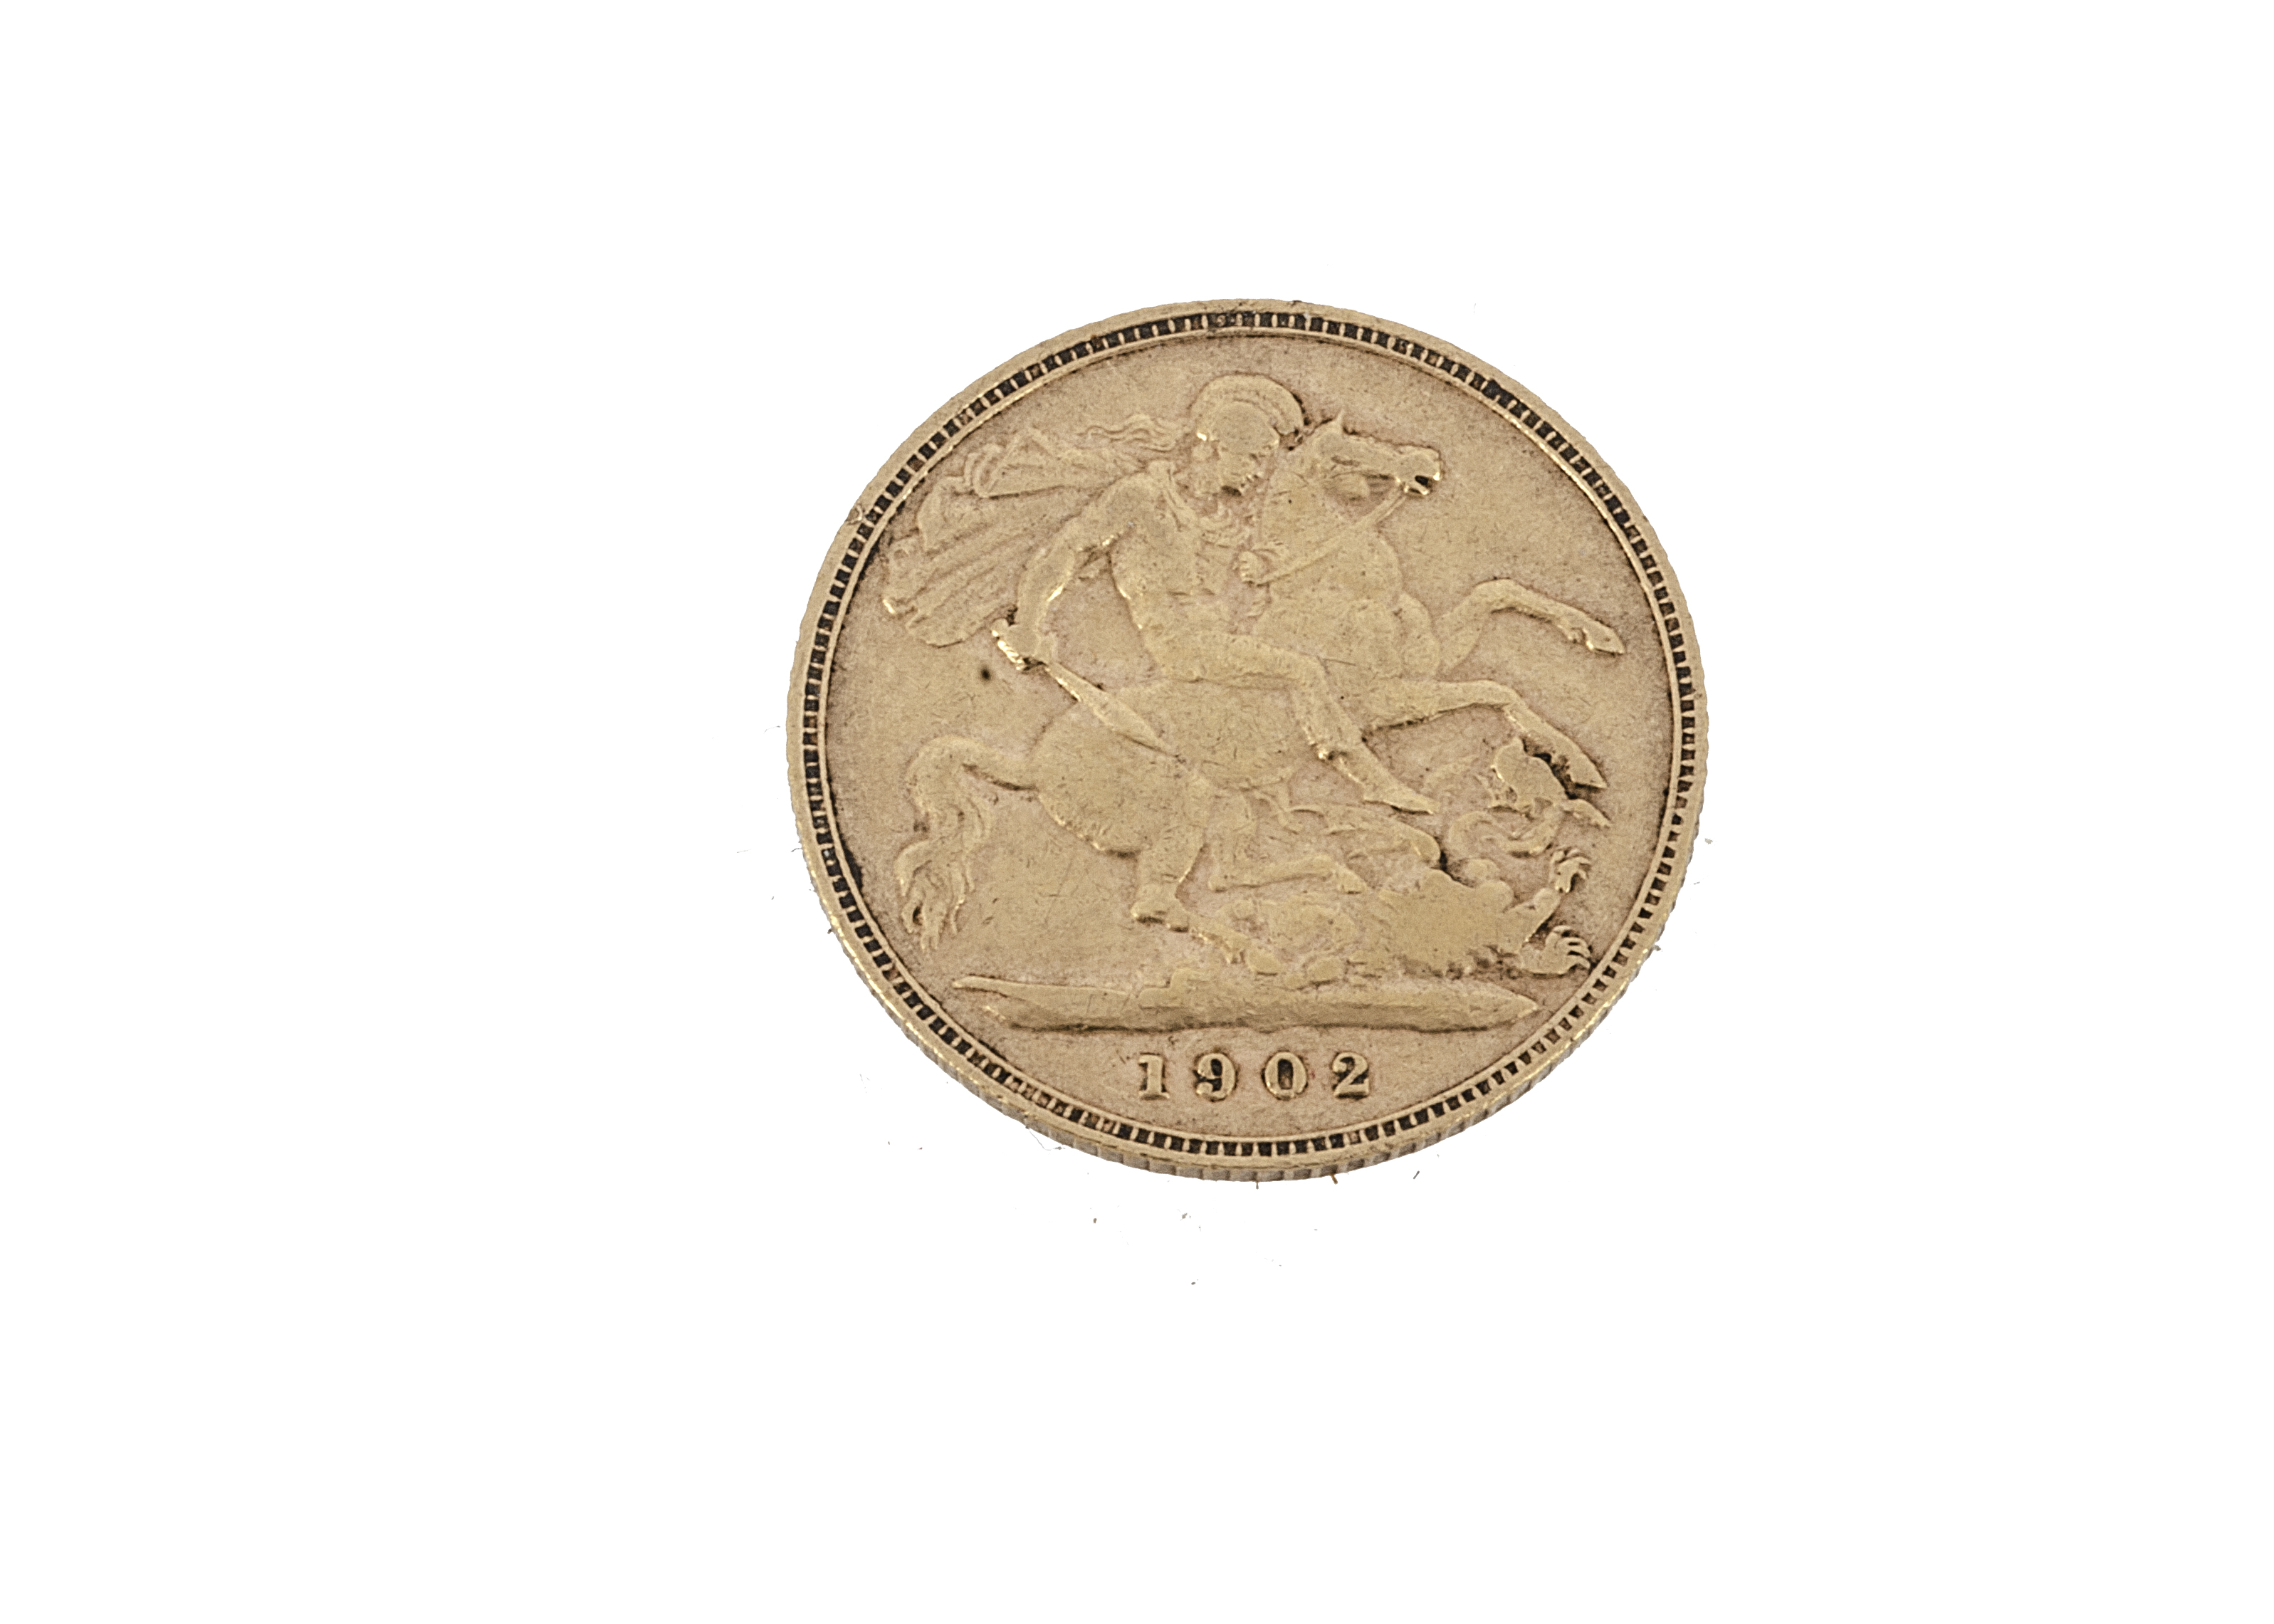 An Edward VII half gold sovereign, dated 1902, F-VF